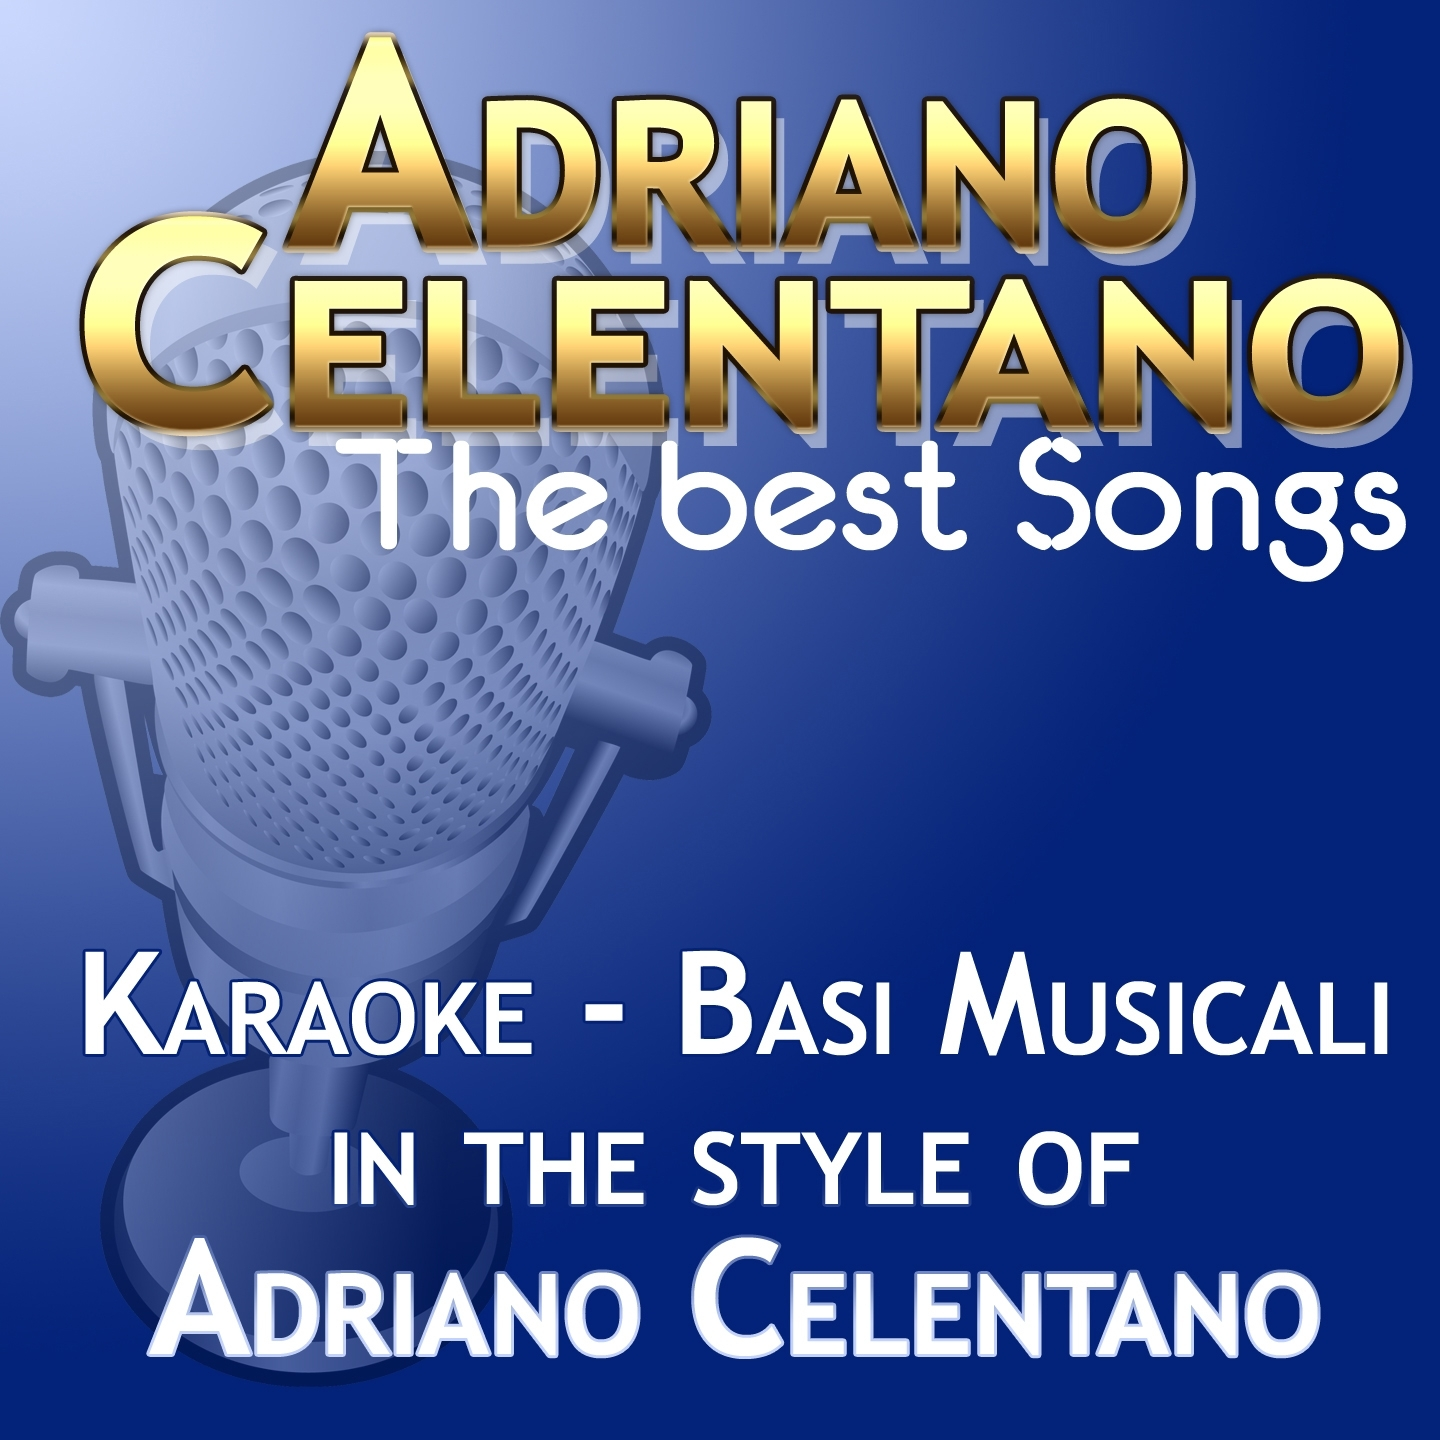 Adriano Celentano : The Best Songs